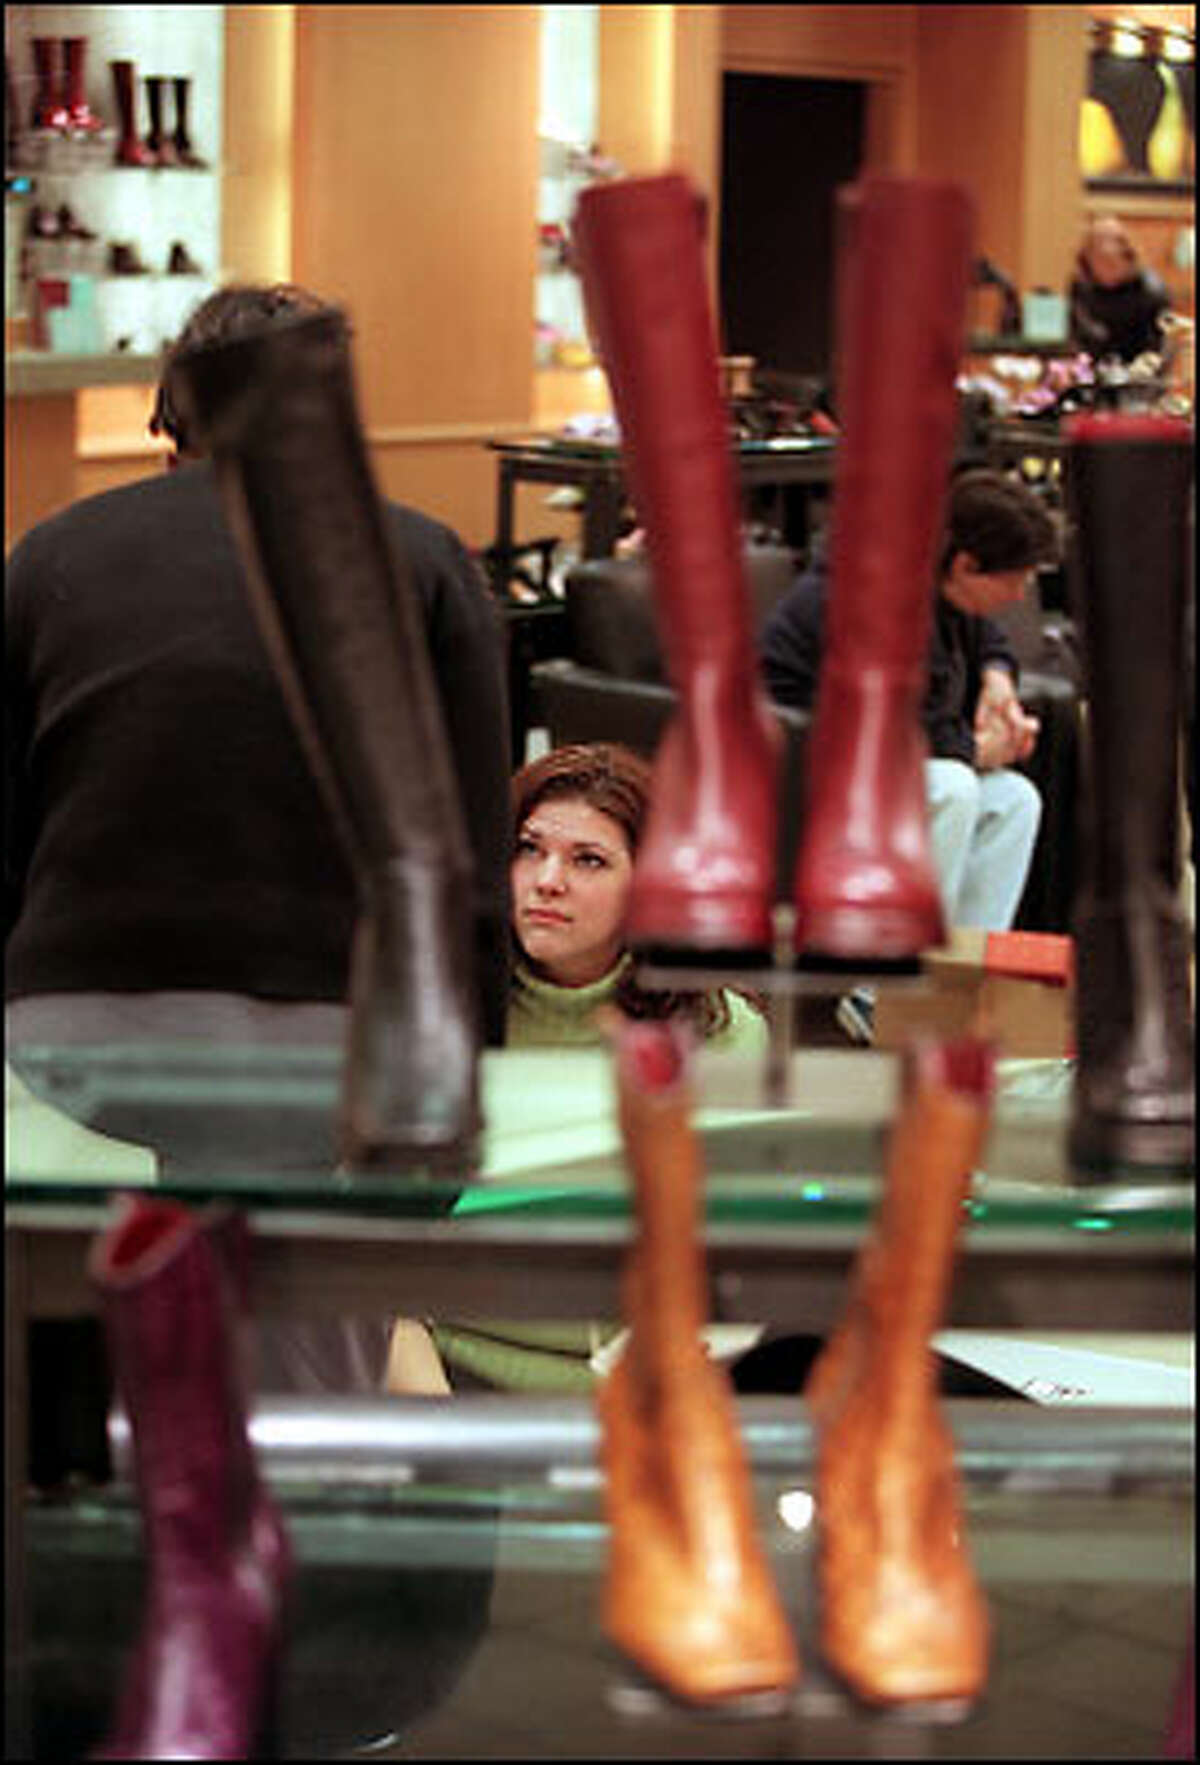 Saleswoman Nicole Wierzbicki, center, fits Fabiola Phillipi with a new pair of boots in the downtown Seattle store.